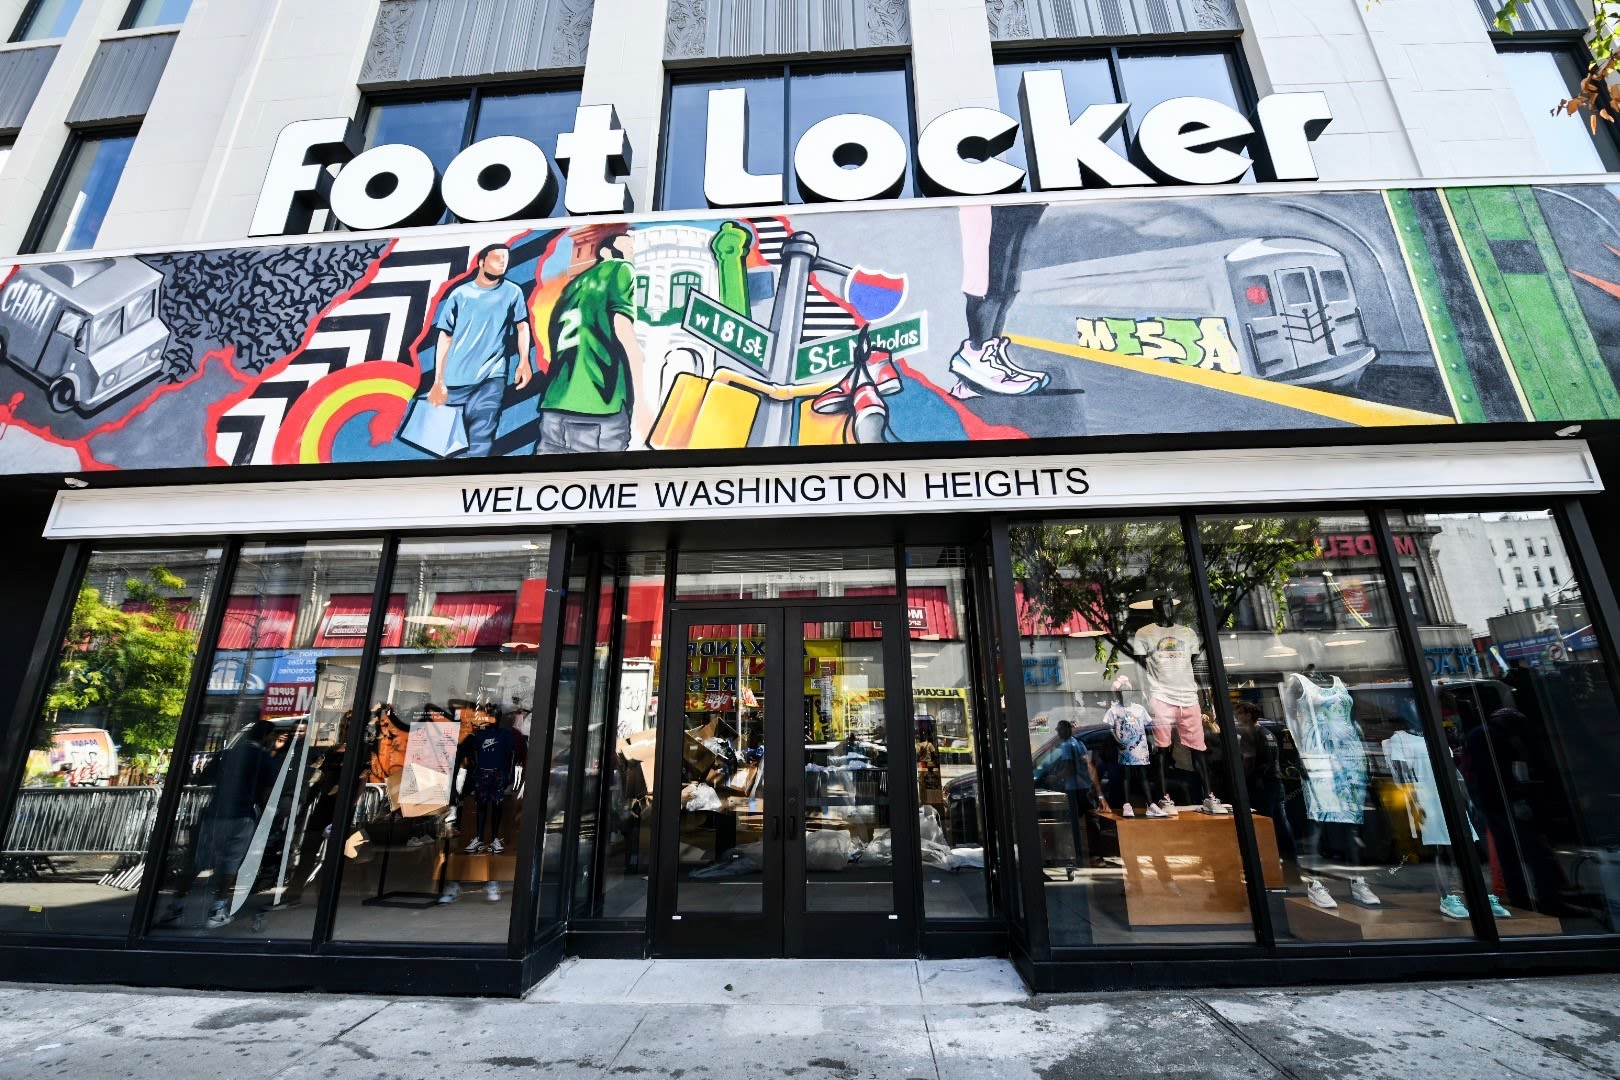 Footlocker coupon code